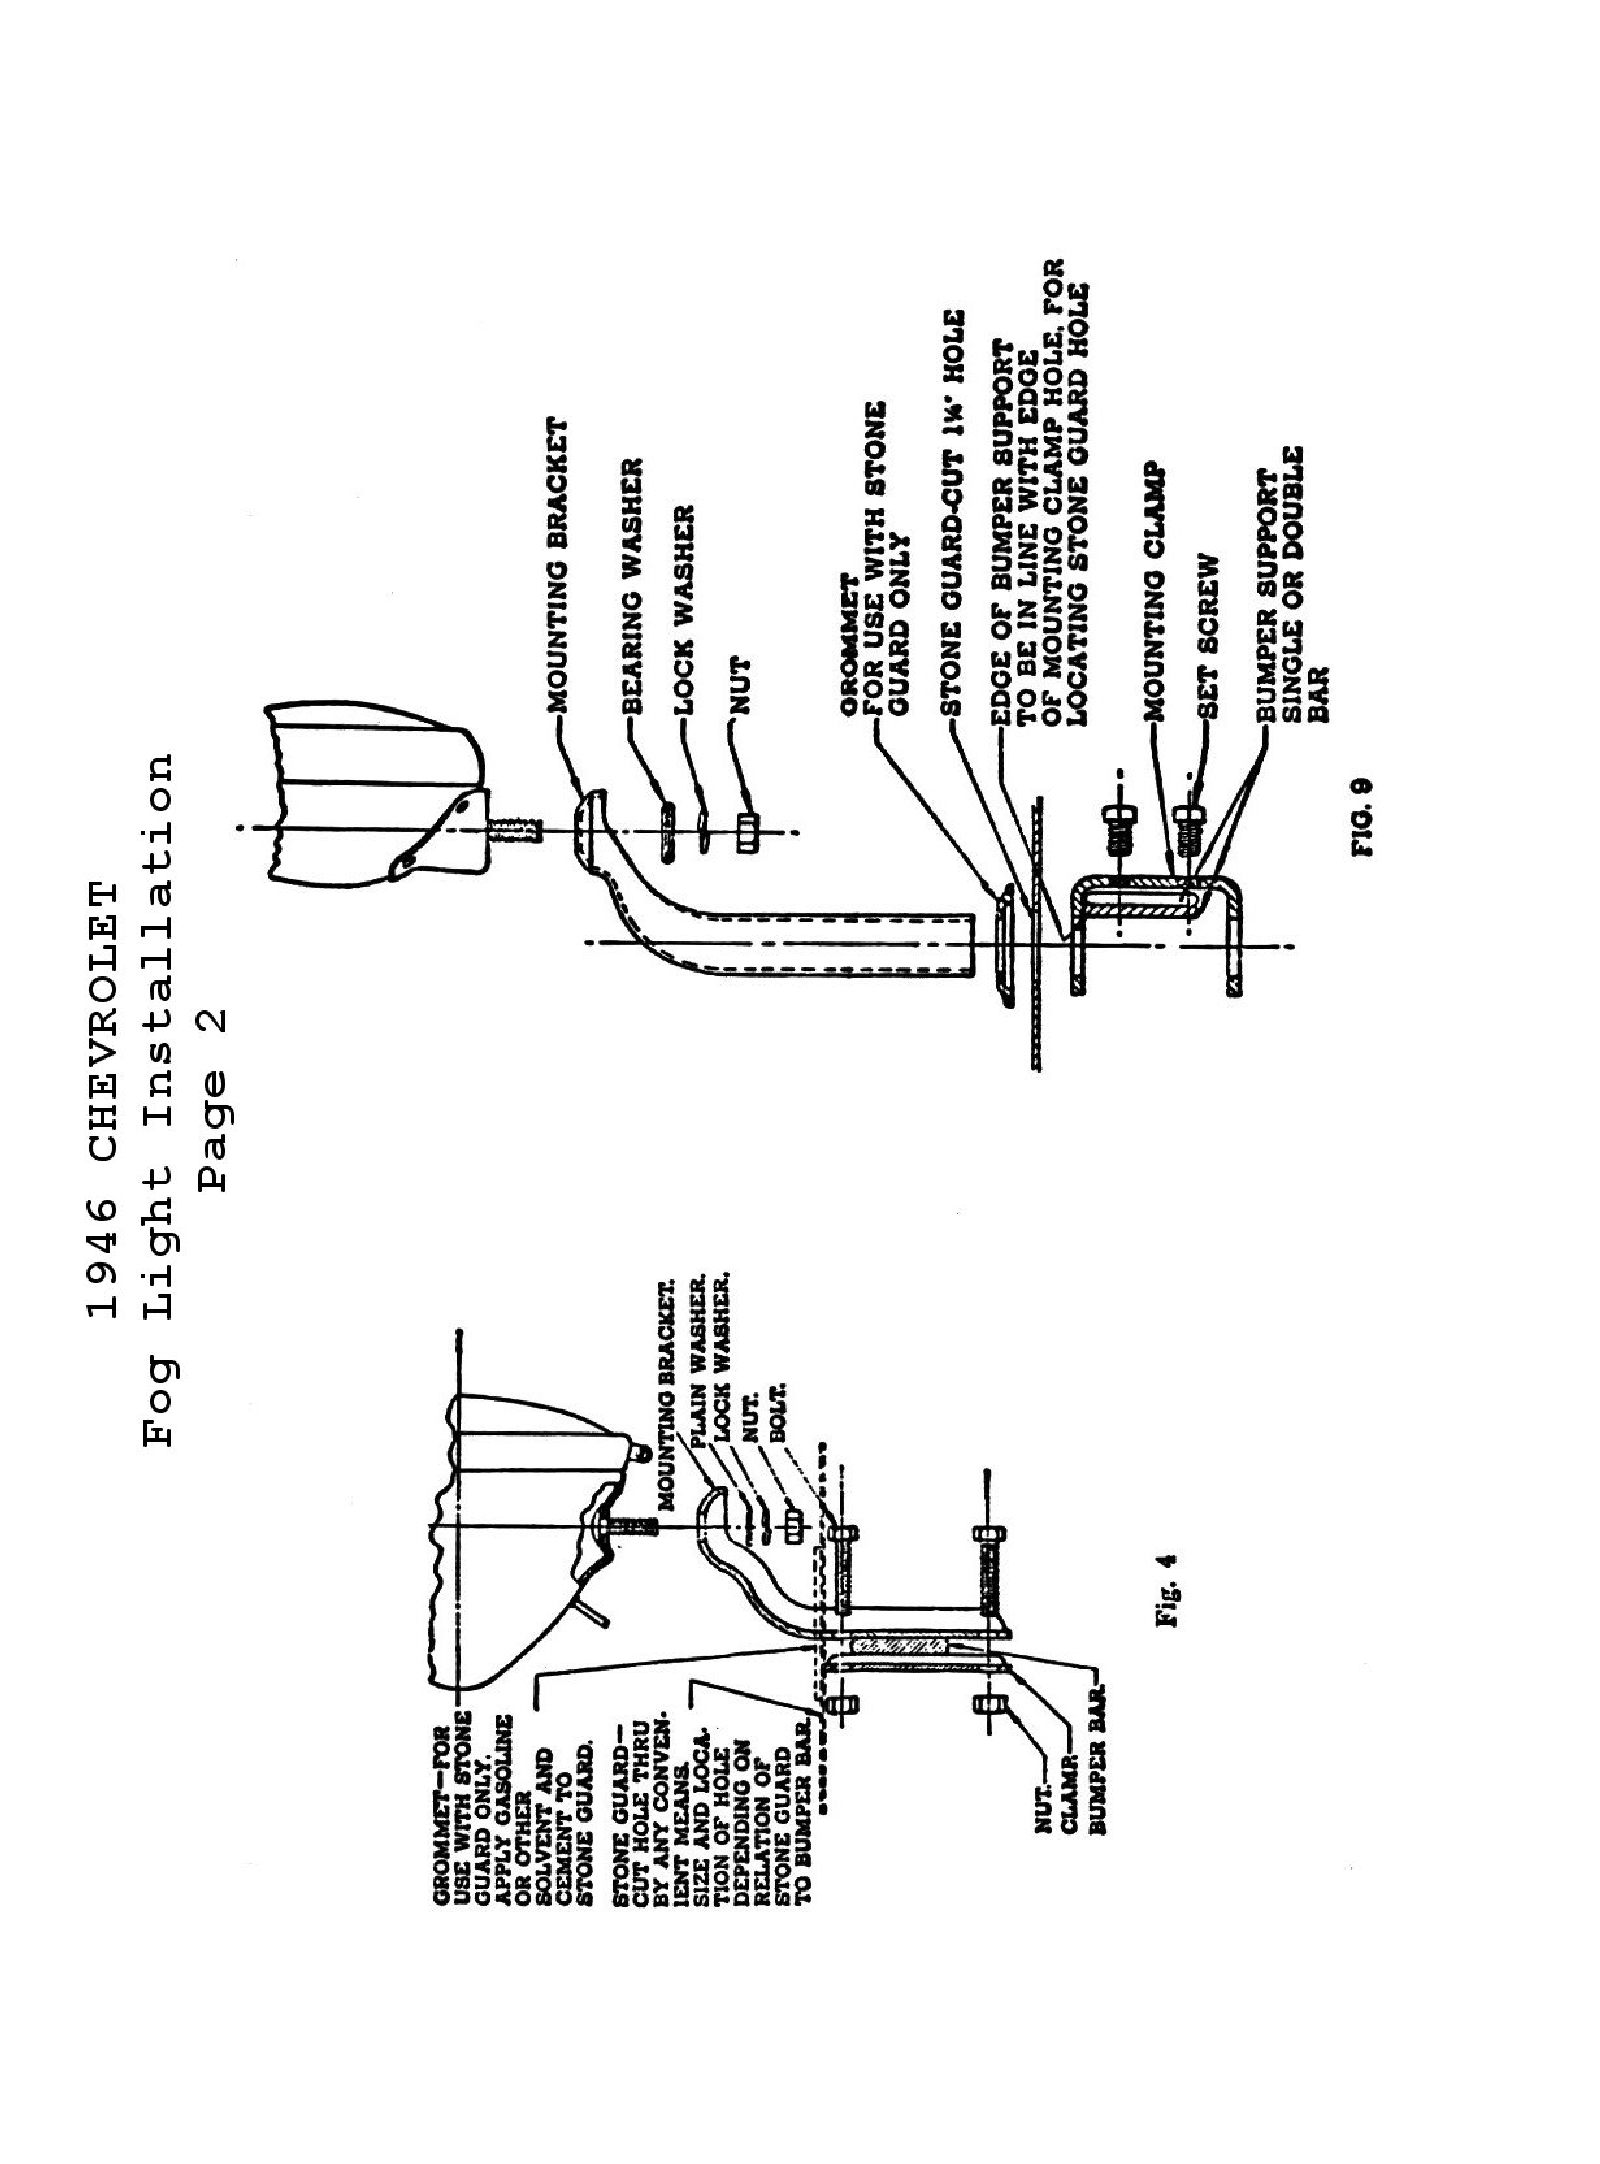 Chevy Wiring diagrams on impala accessories, 2002 chevrolet trailblazer fuse diagram, impala engine, impala steering diagram, impala frame, impala fuse diagram, impala wheels, impala transmission diagram, impala suspension, impala seats, impala parts, impala ecu diagram, impala fuel system diagram,